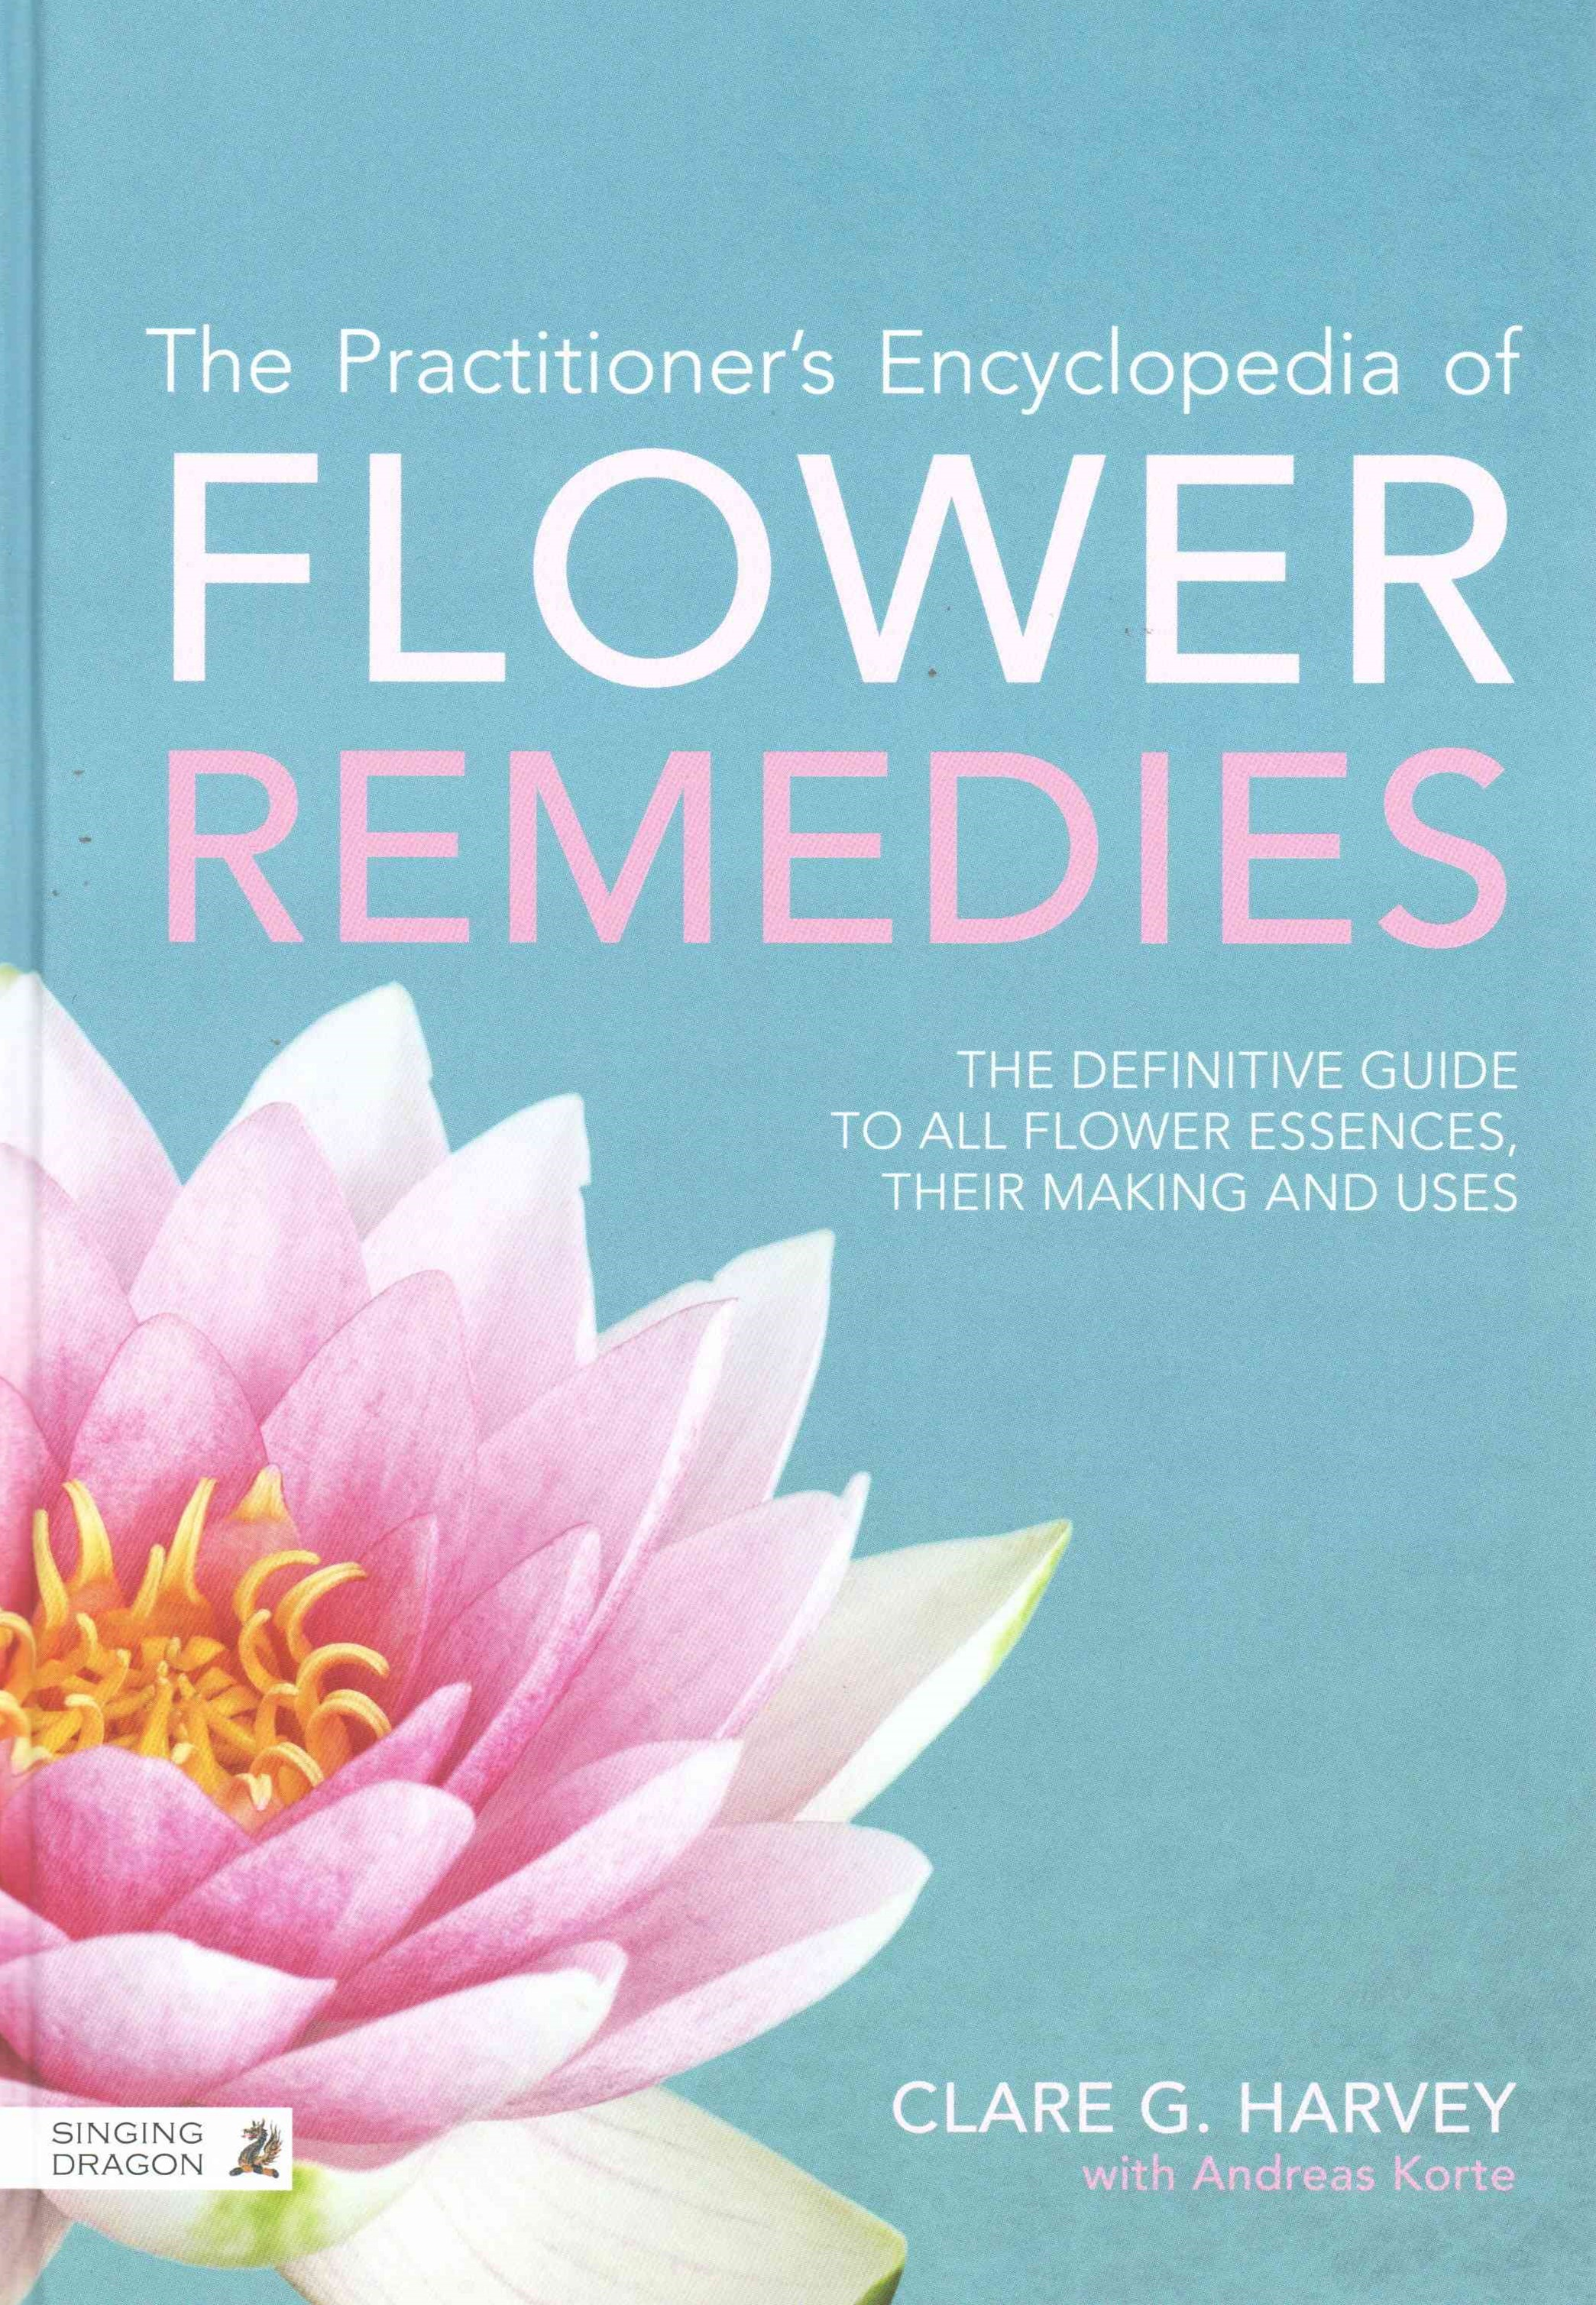 Practitioner's Encyclopedia of Flower Remedies